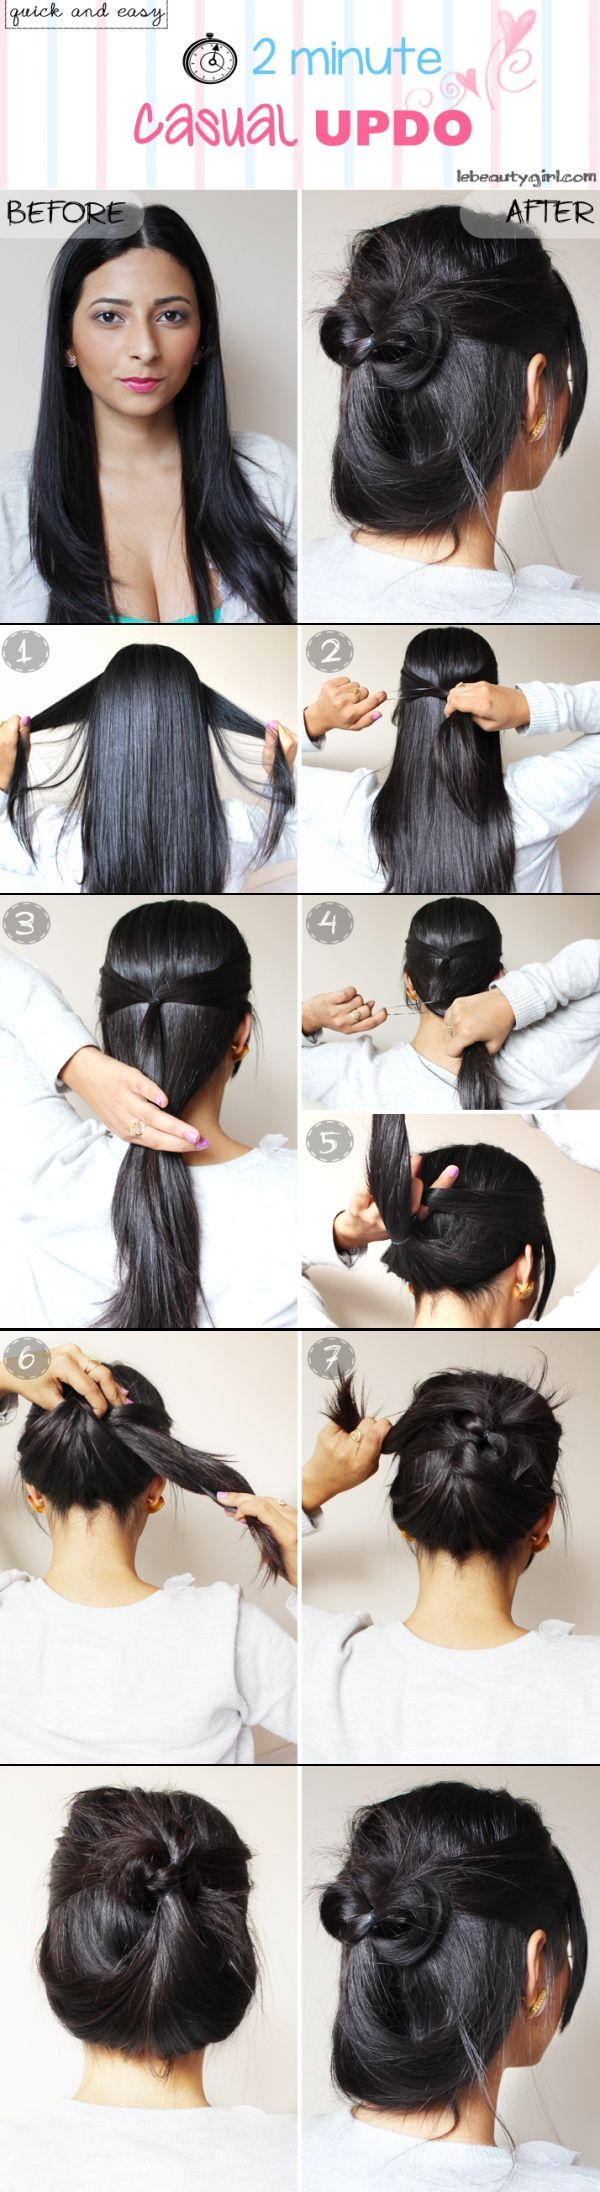 110 best Hairstyles images on Pinterest | Coiffure facile, Cute ...